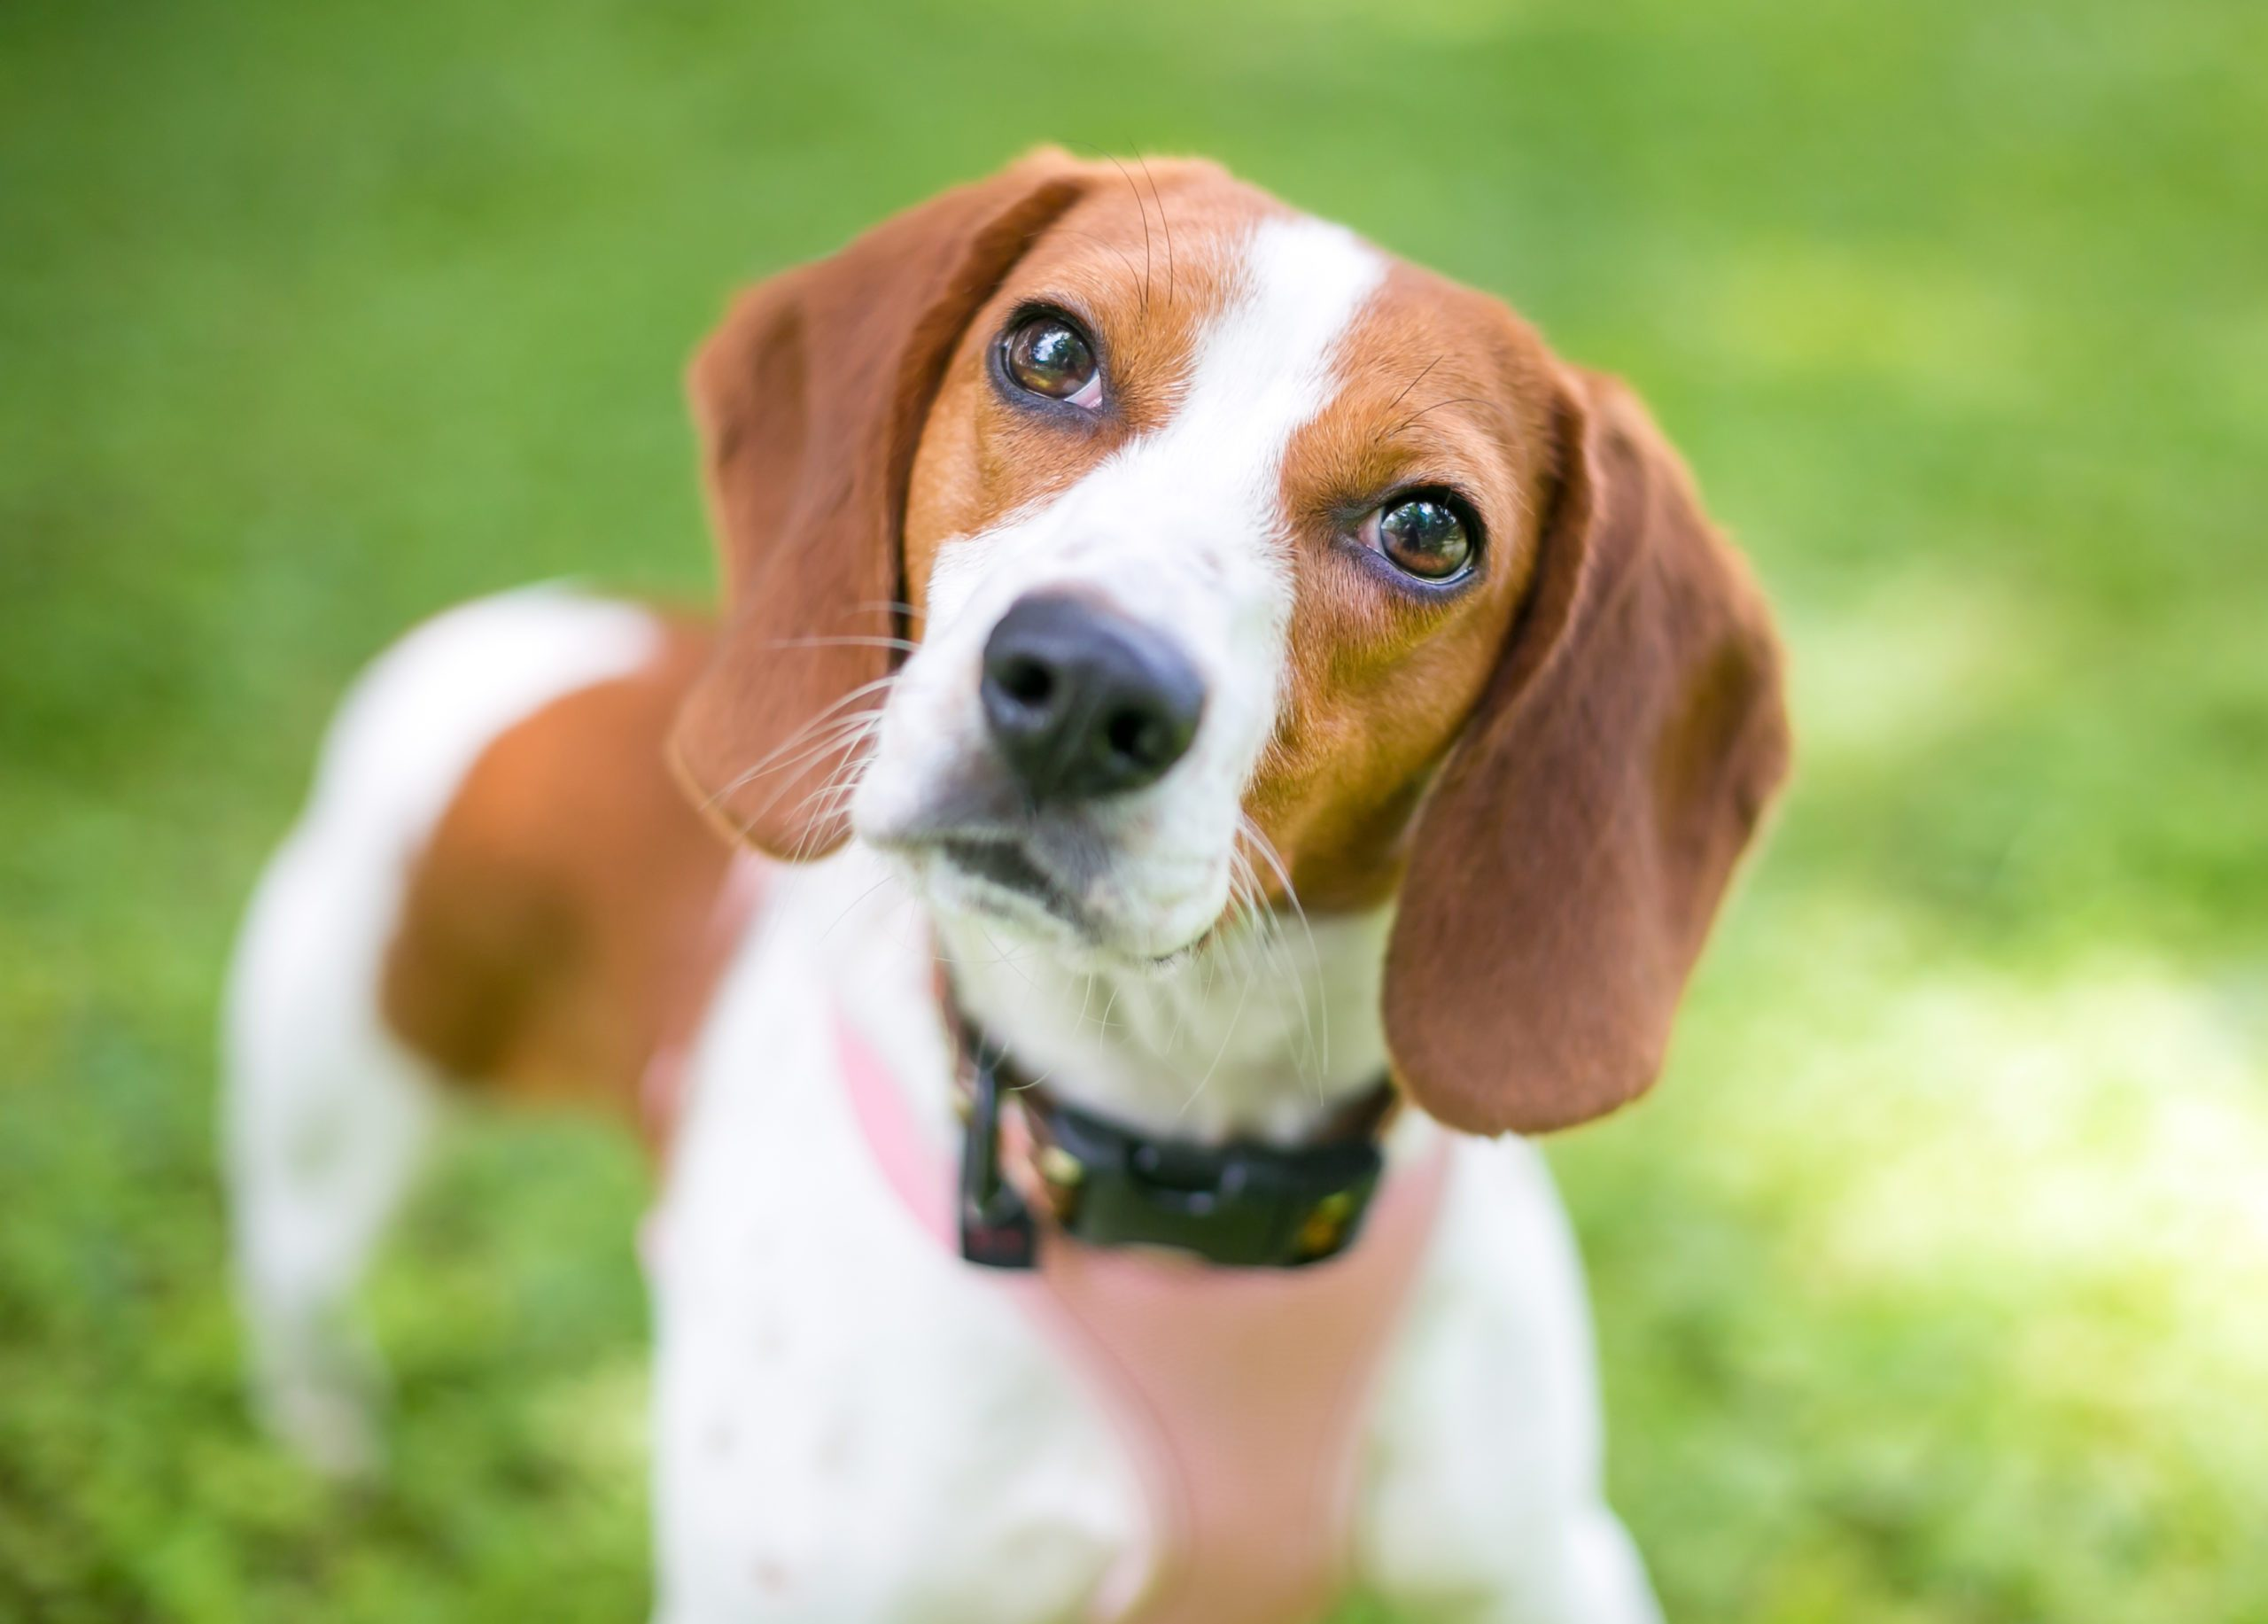 A red and white Beagle dog listening with a head tilt